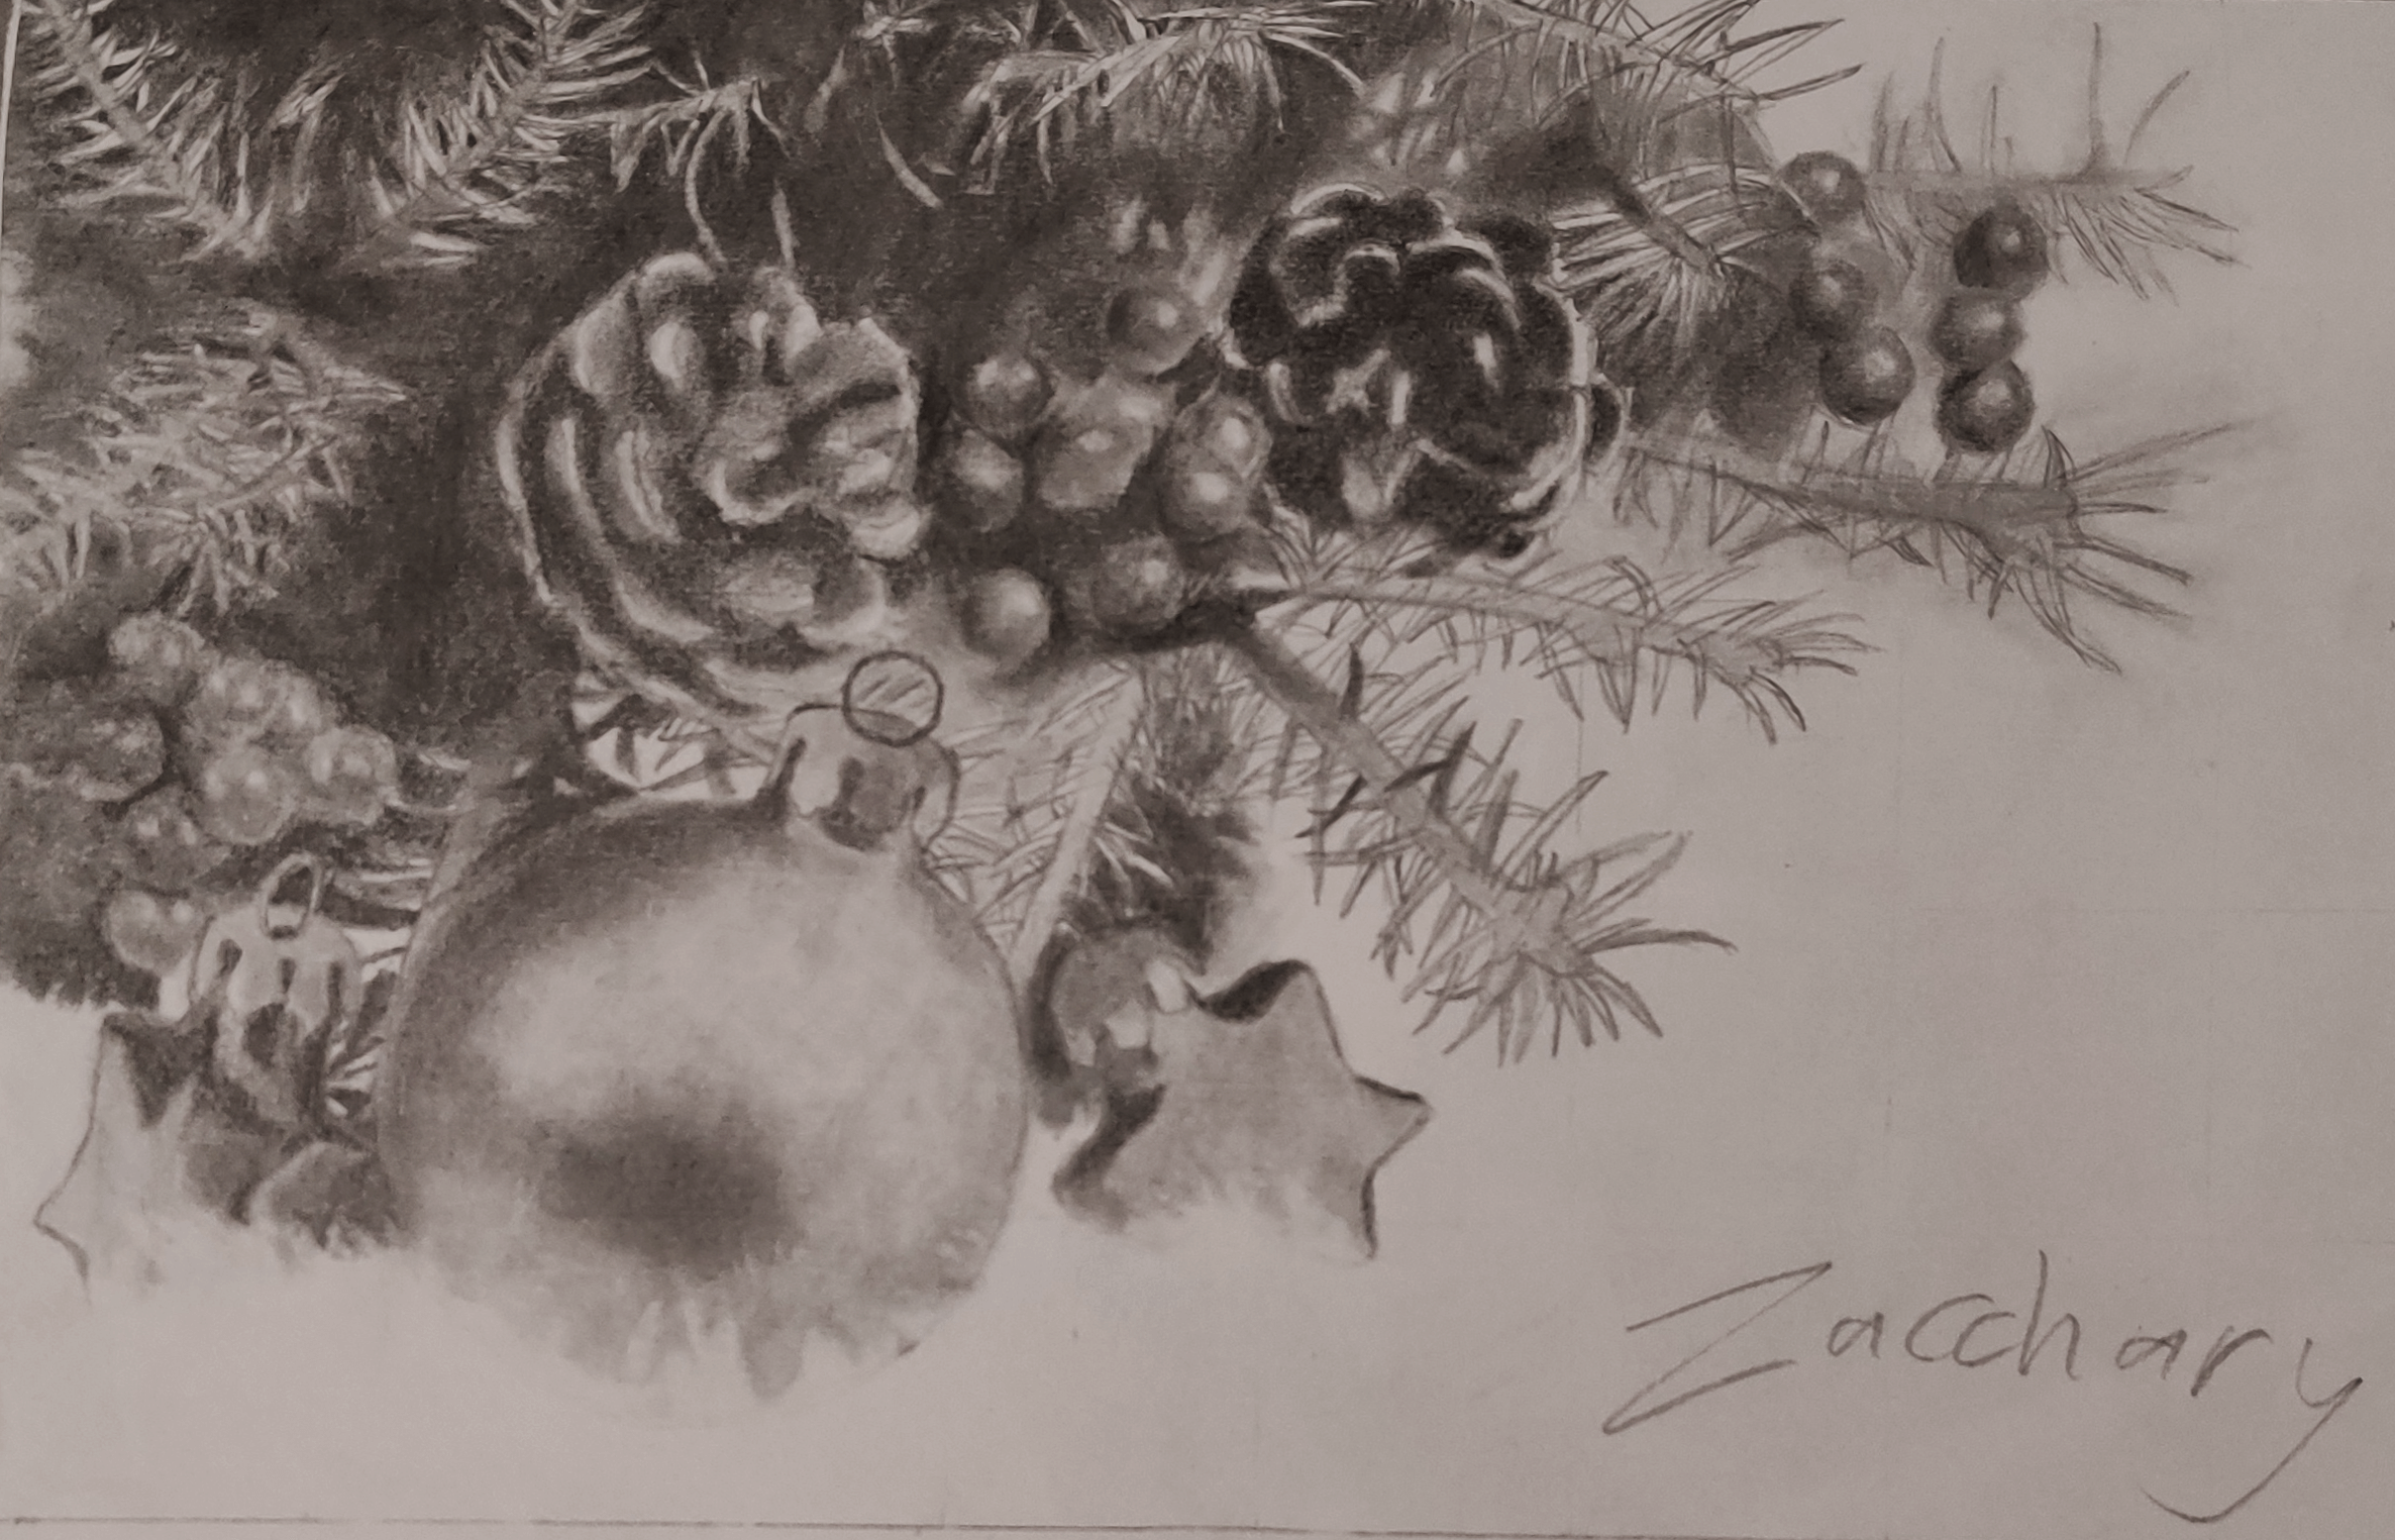 A value drawing of a small Christmas scene.